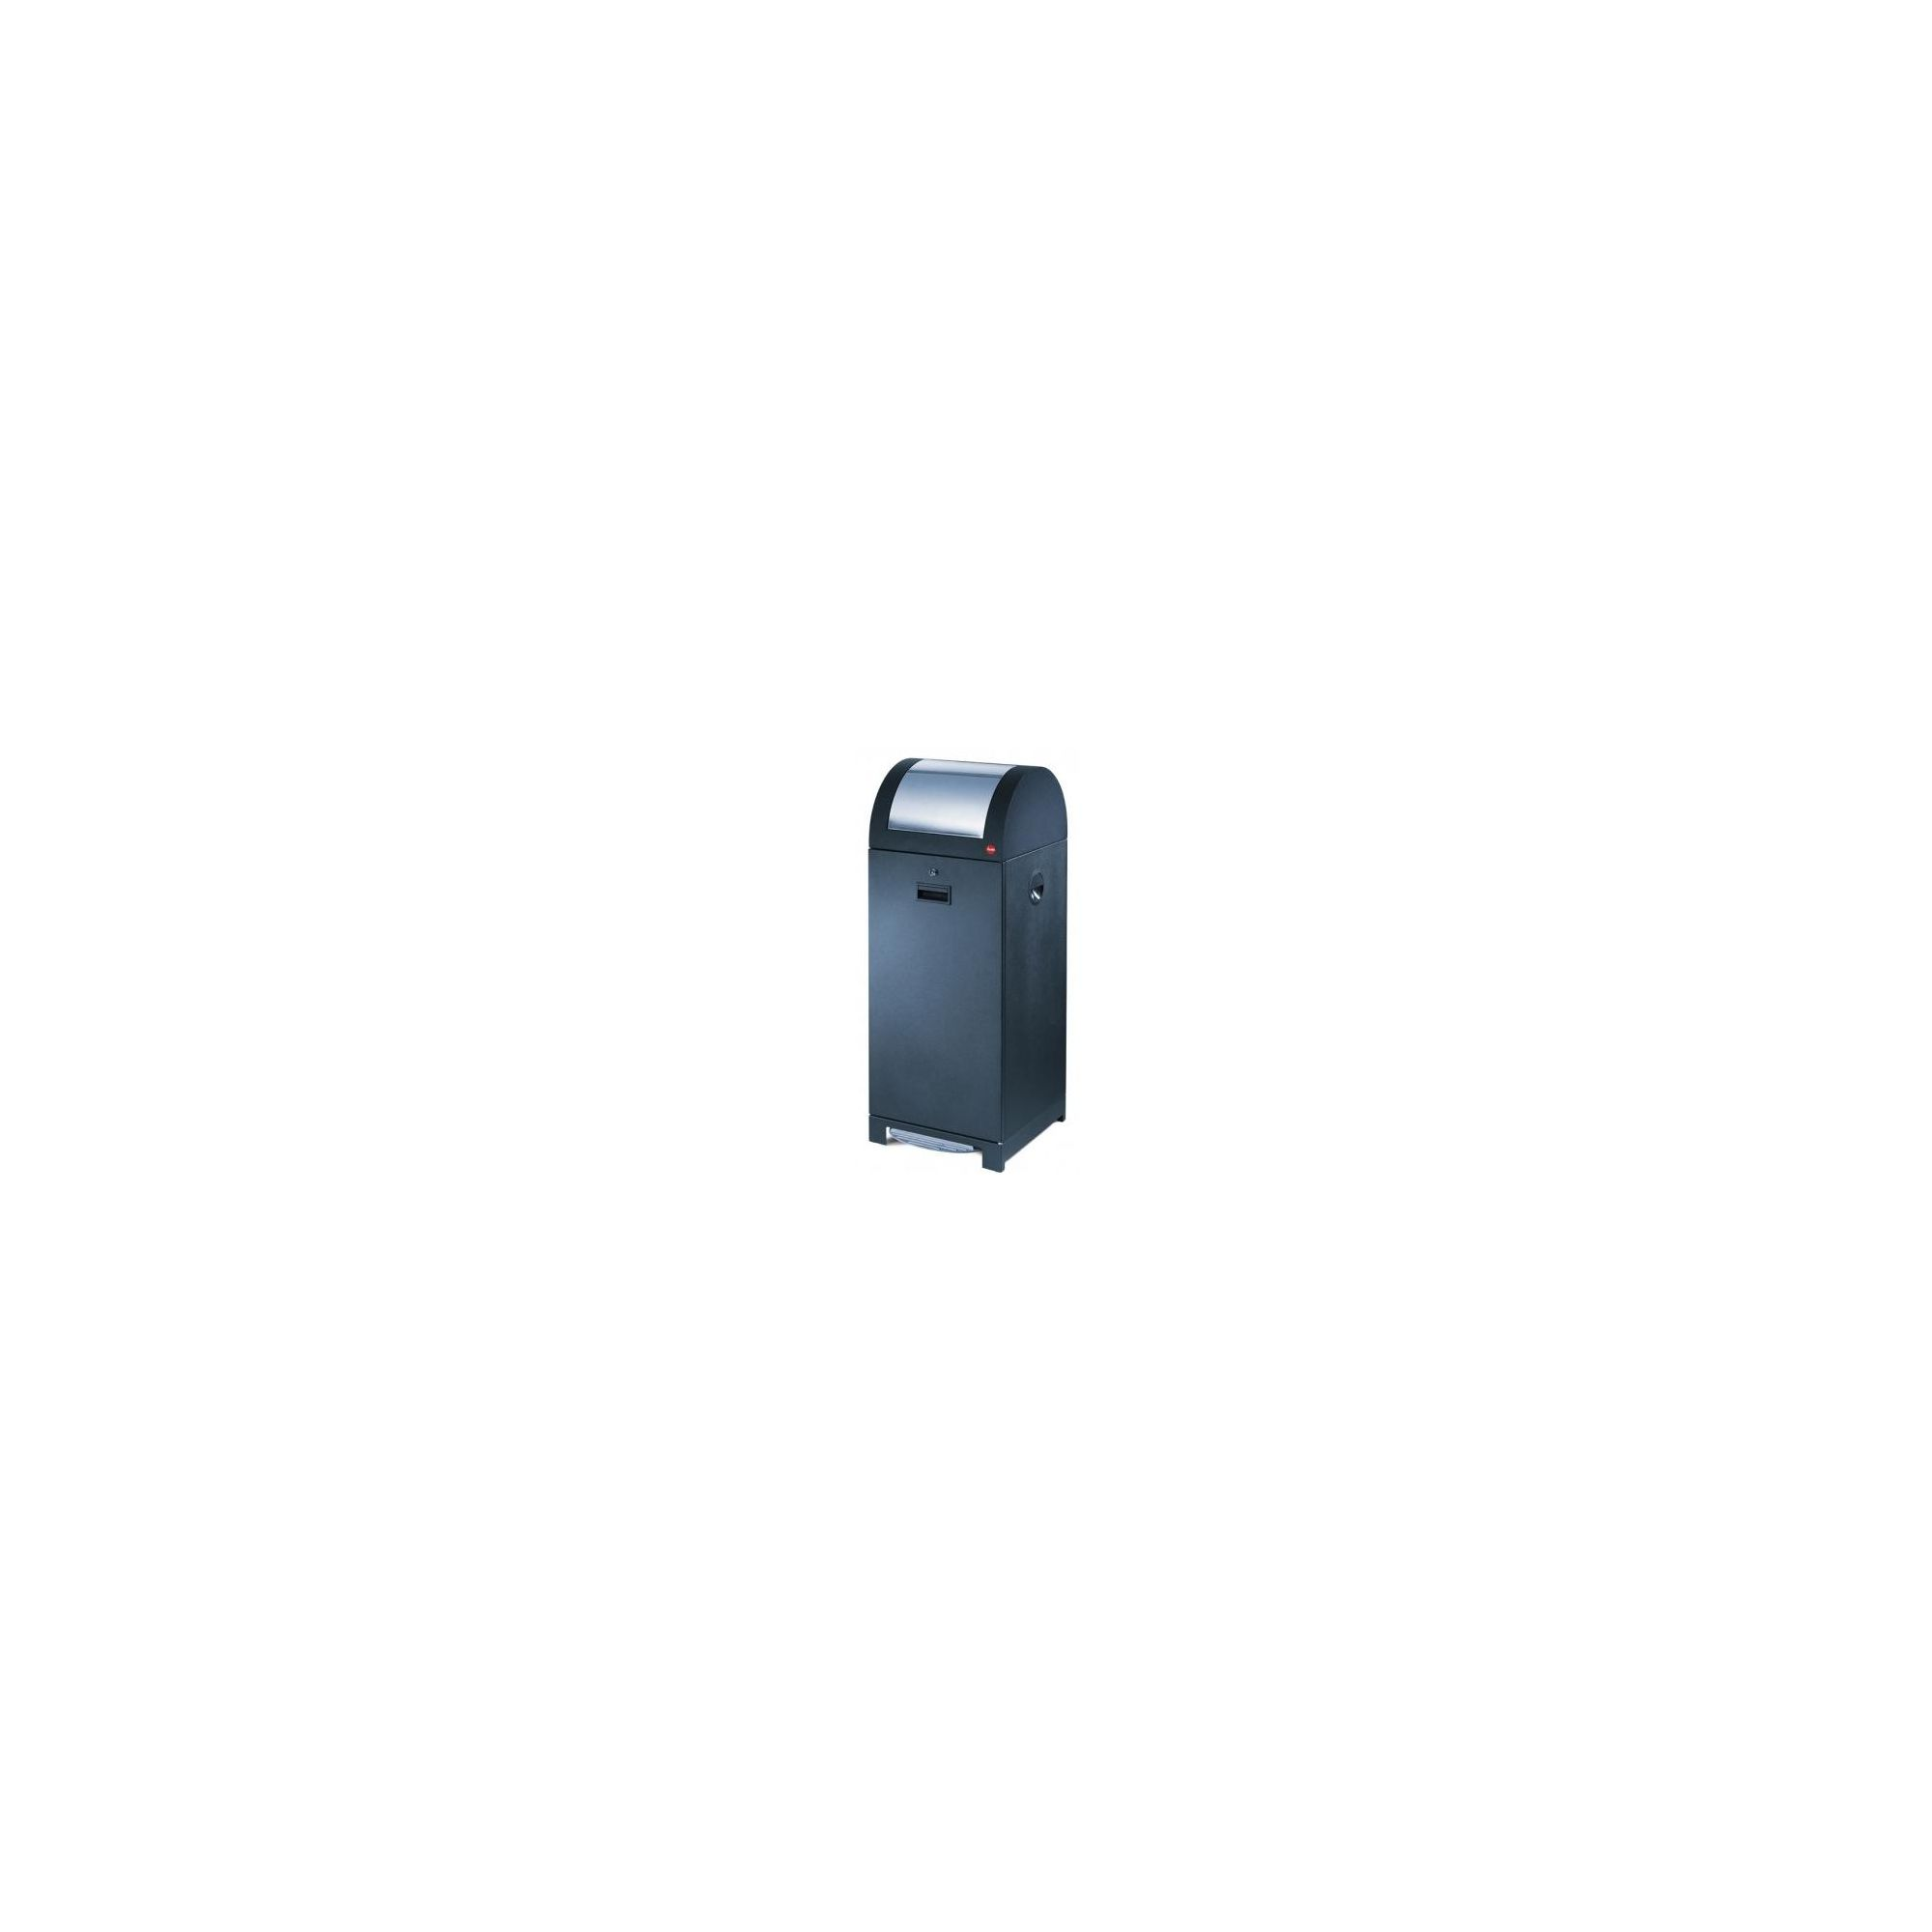 Hailo ProfiLine WSB Design 70P Recycling and Waste Bin in Black with Galvanized Inner Bin at Tesco Direct